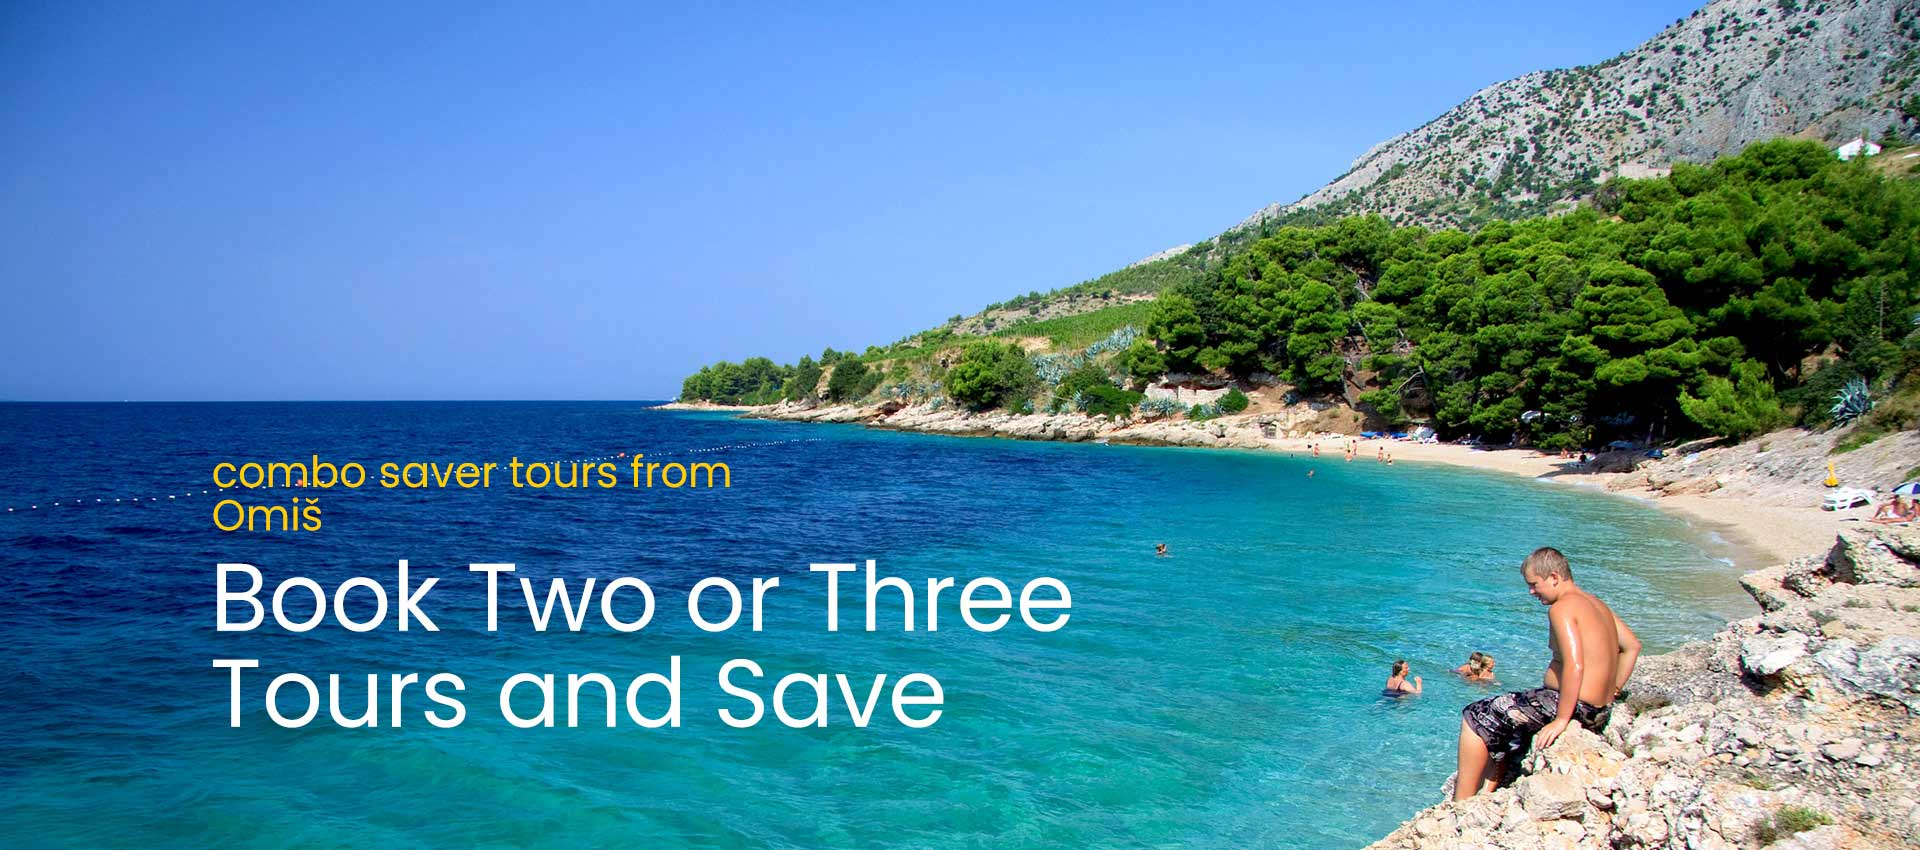 Tour packages in Omiš